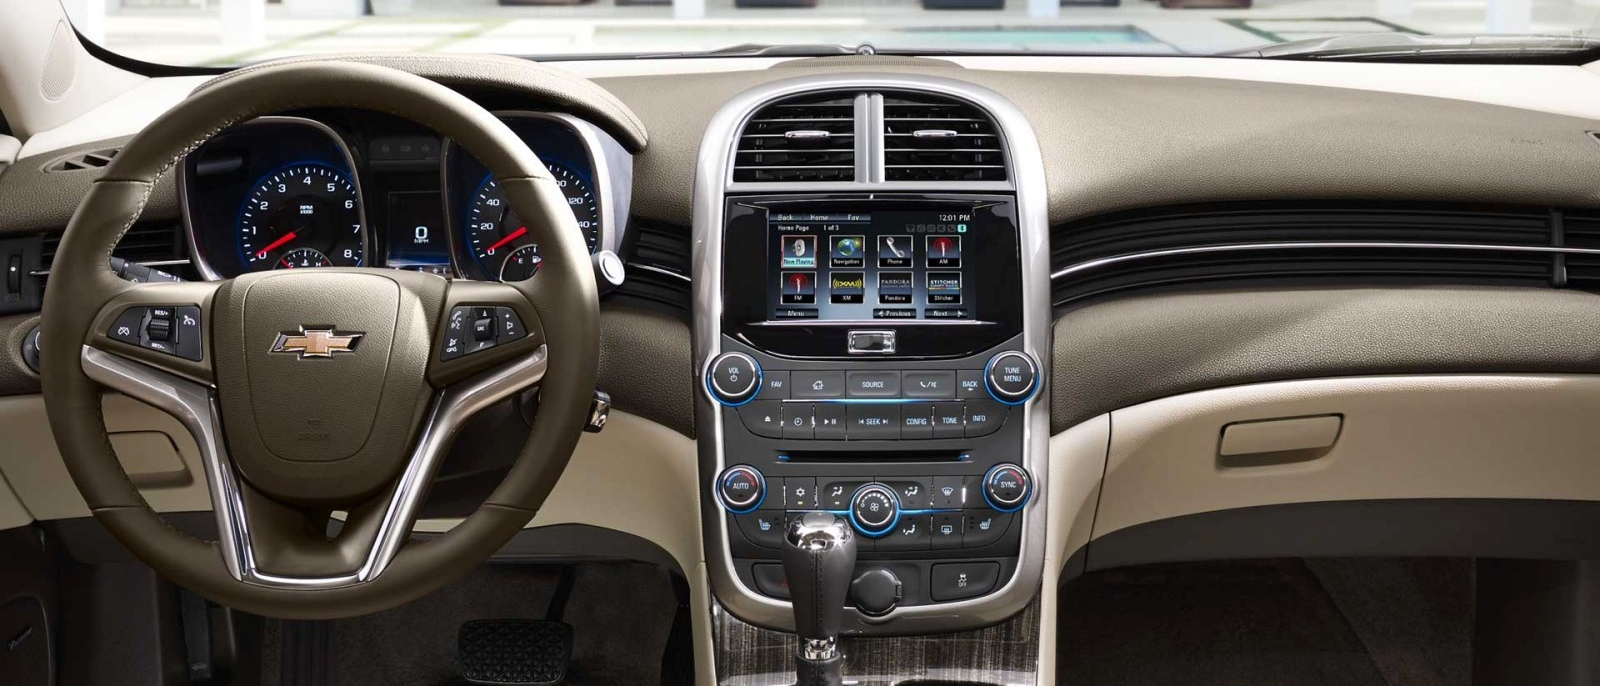 2015 Chevy Malibu Interior